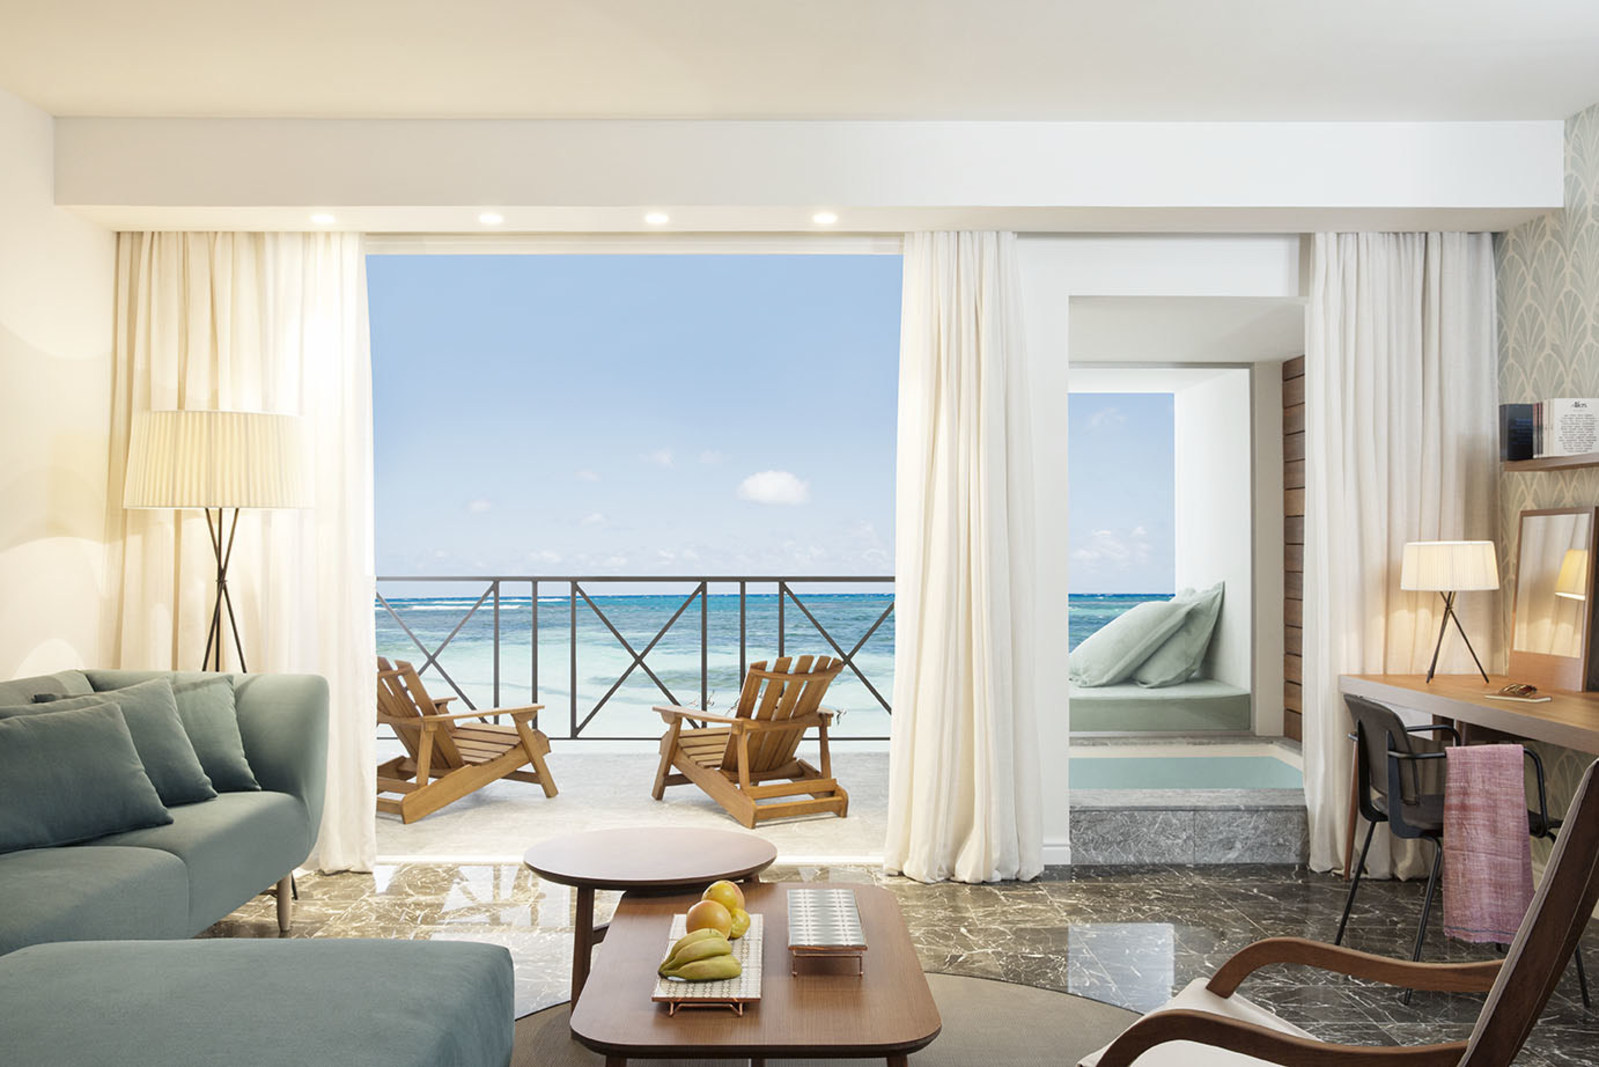 Discerning travelers will soon have a new bucket list item to check off their list with the highly anticipated Excellence Oyster Bay resort opening in 2018.